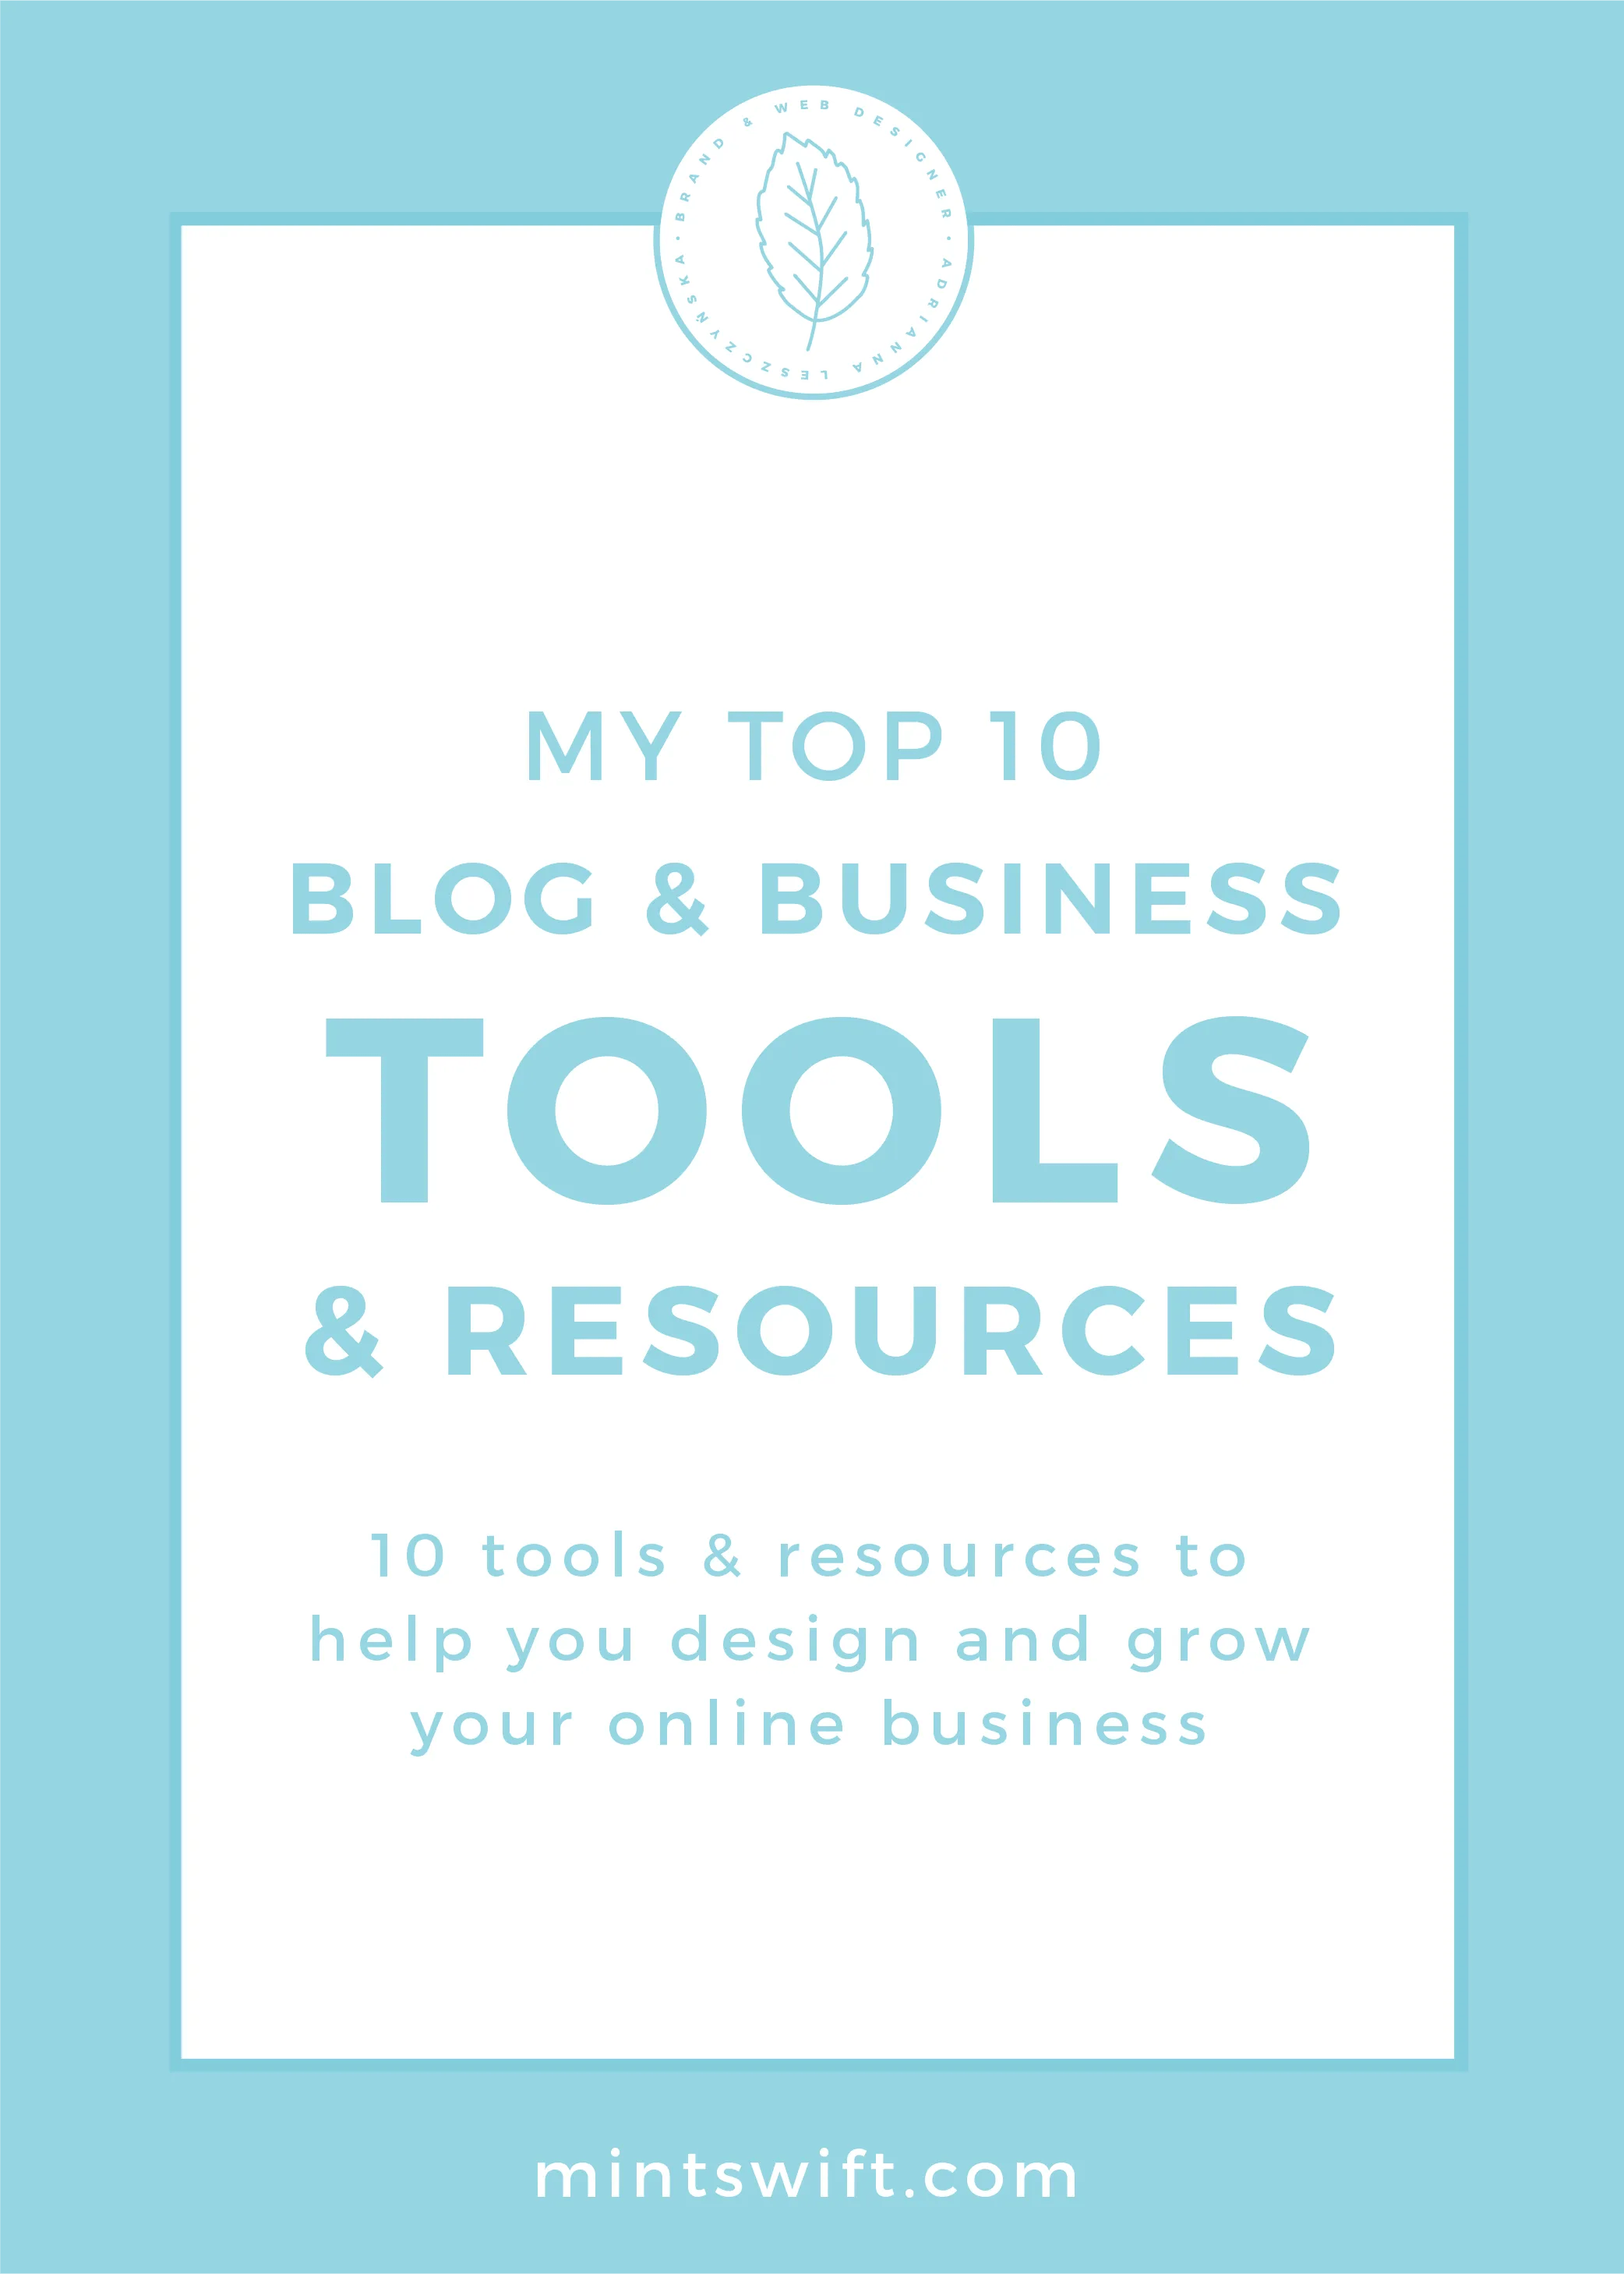 My Top 10 Blog & Business Tools & Resources. 10 Tools & Resources to Help You Design and Grow Your Online Business by MintSwift